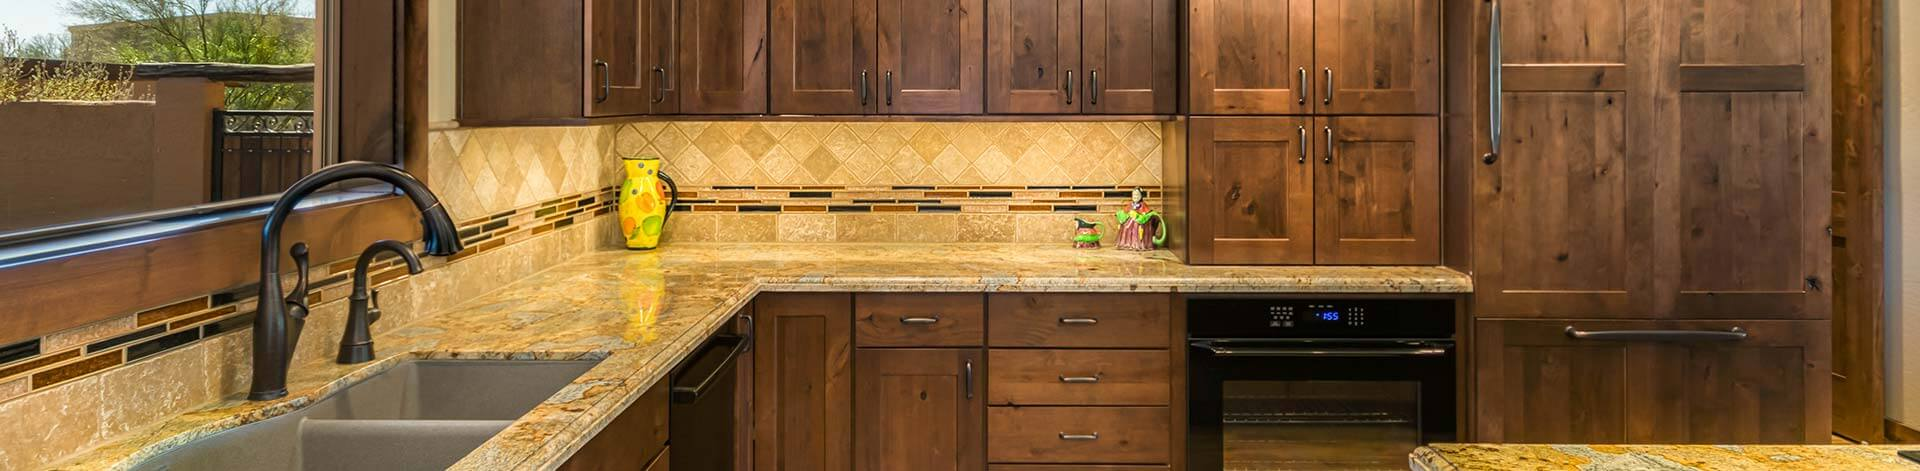 Cabinet Refacing in Phoenix & Scottsdale | Republic West Remodeling